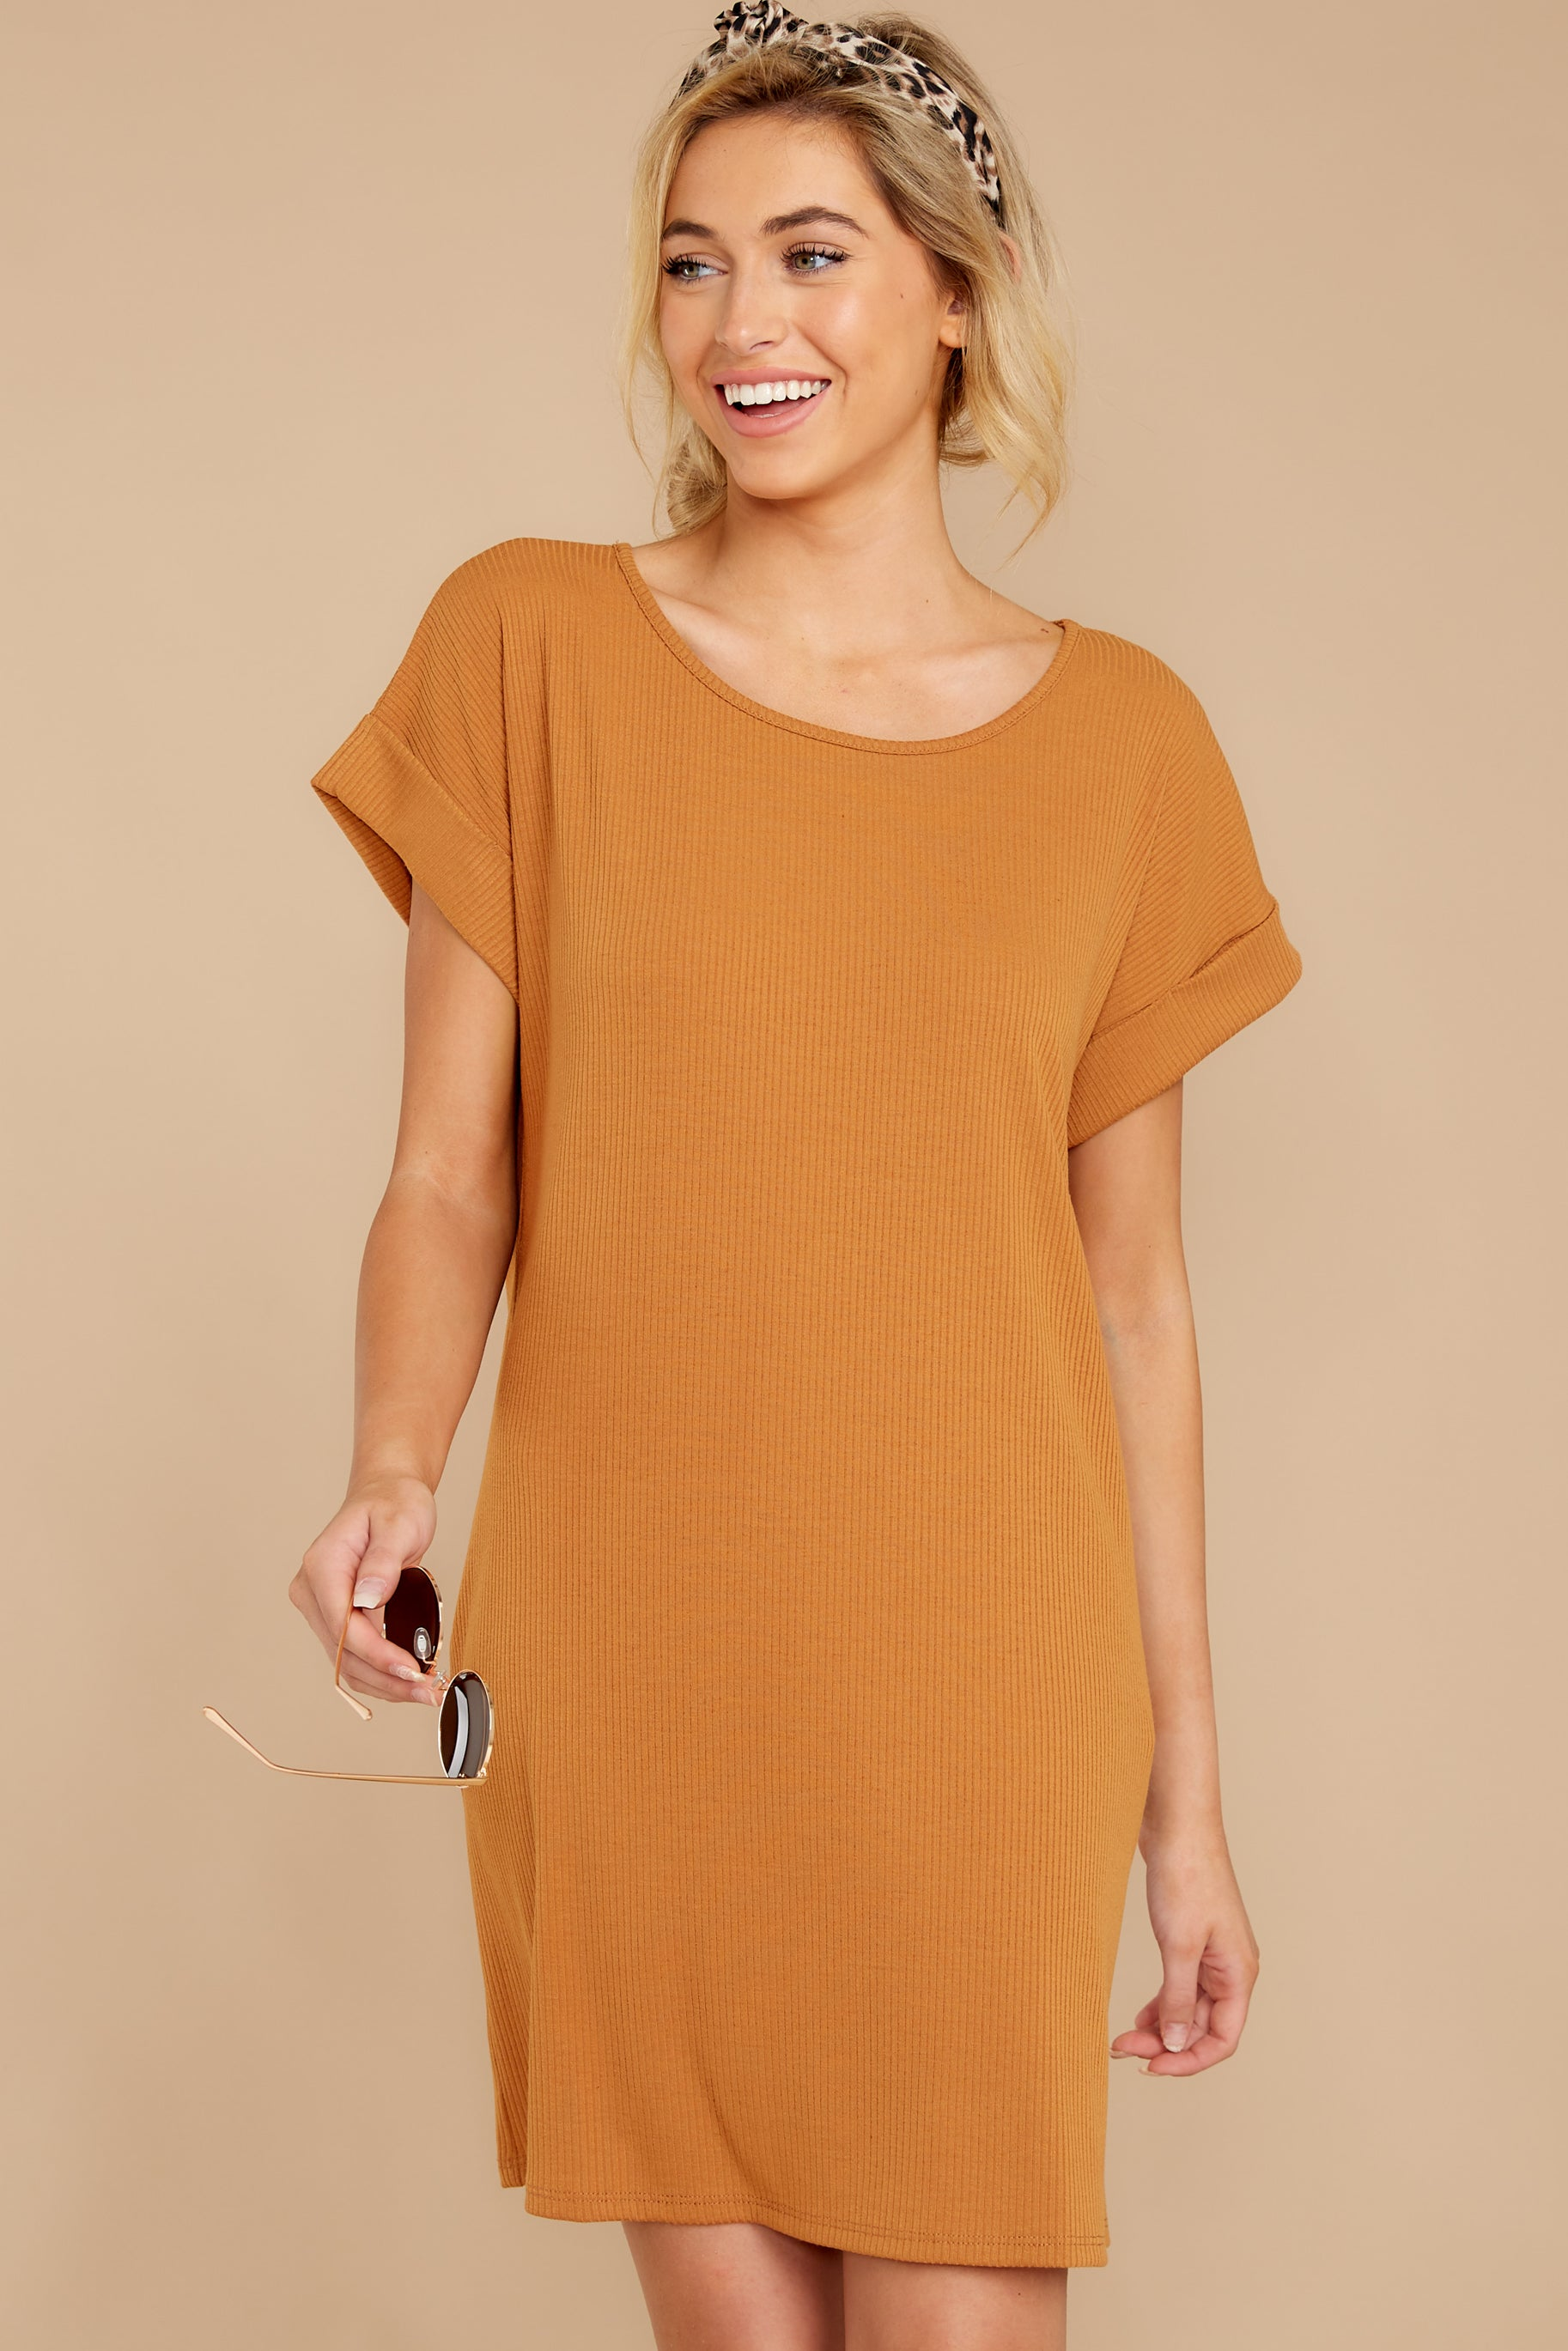 6 Anywhere She Goes Light Camel Dress at reddressboutique.com